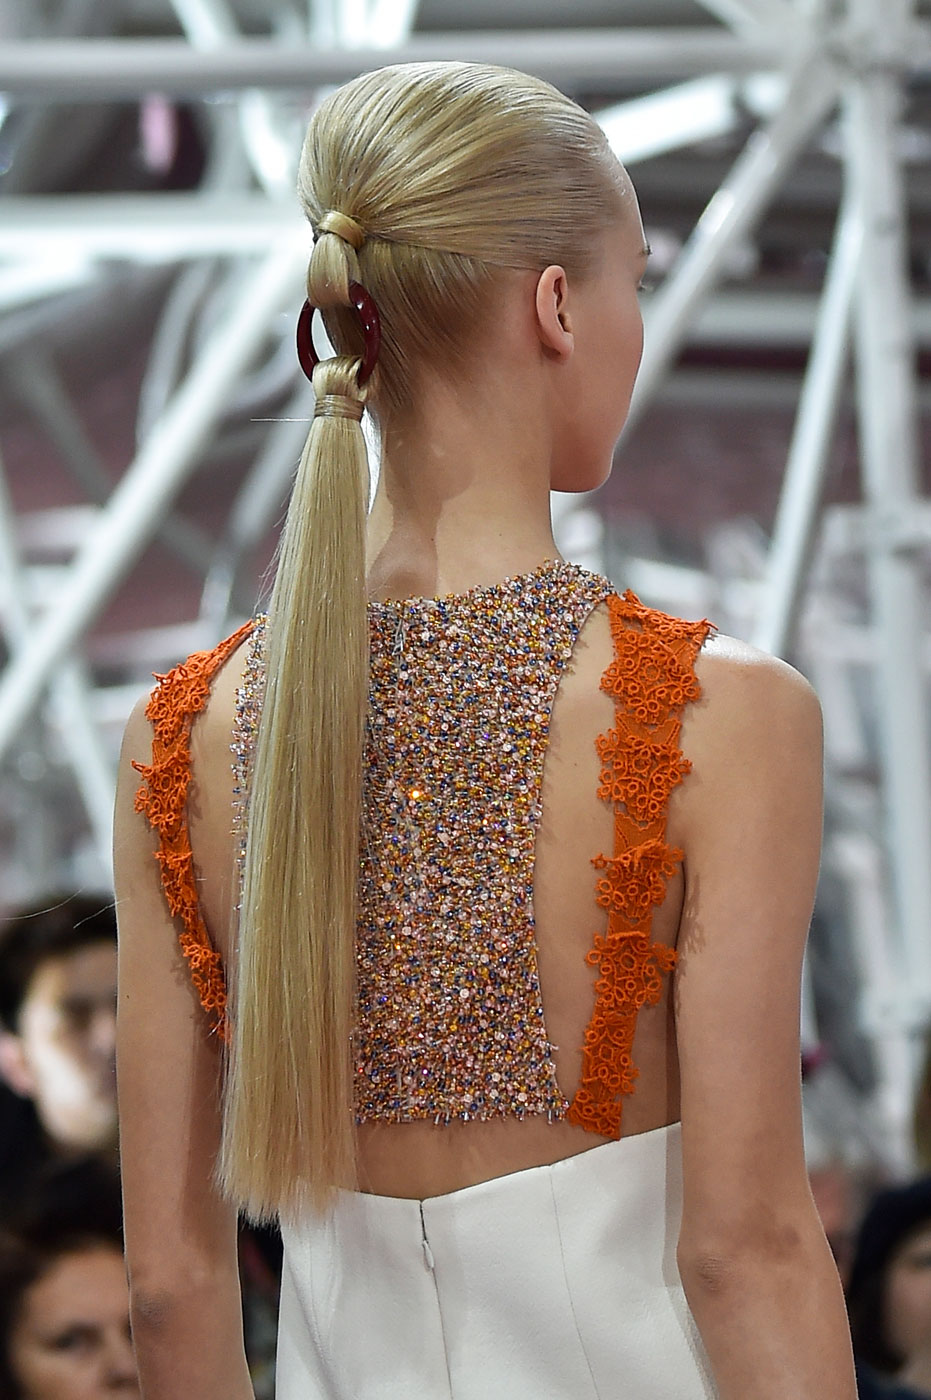 Christian-Dior-fashion-runway-show-close-ups-haute-couture-paris-spring-summer-2015-the-impression-061